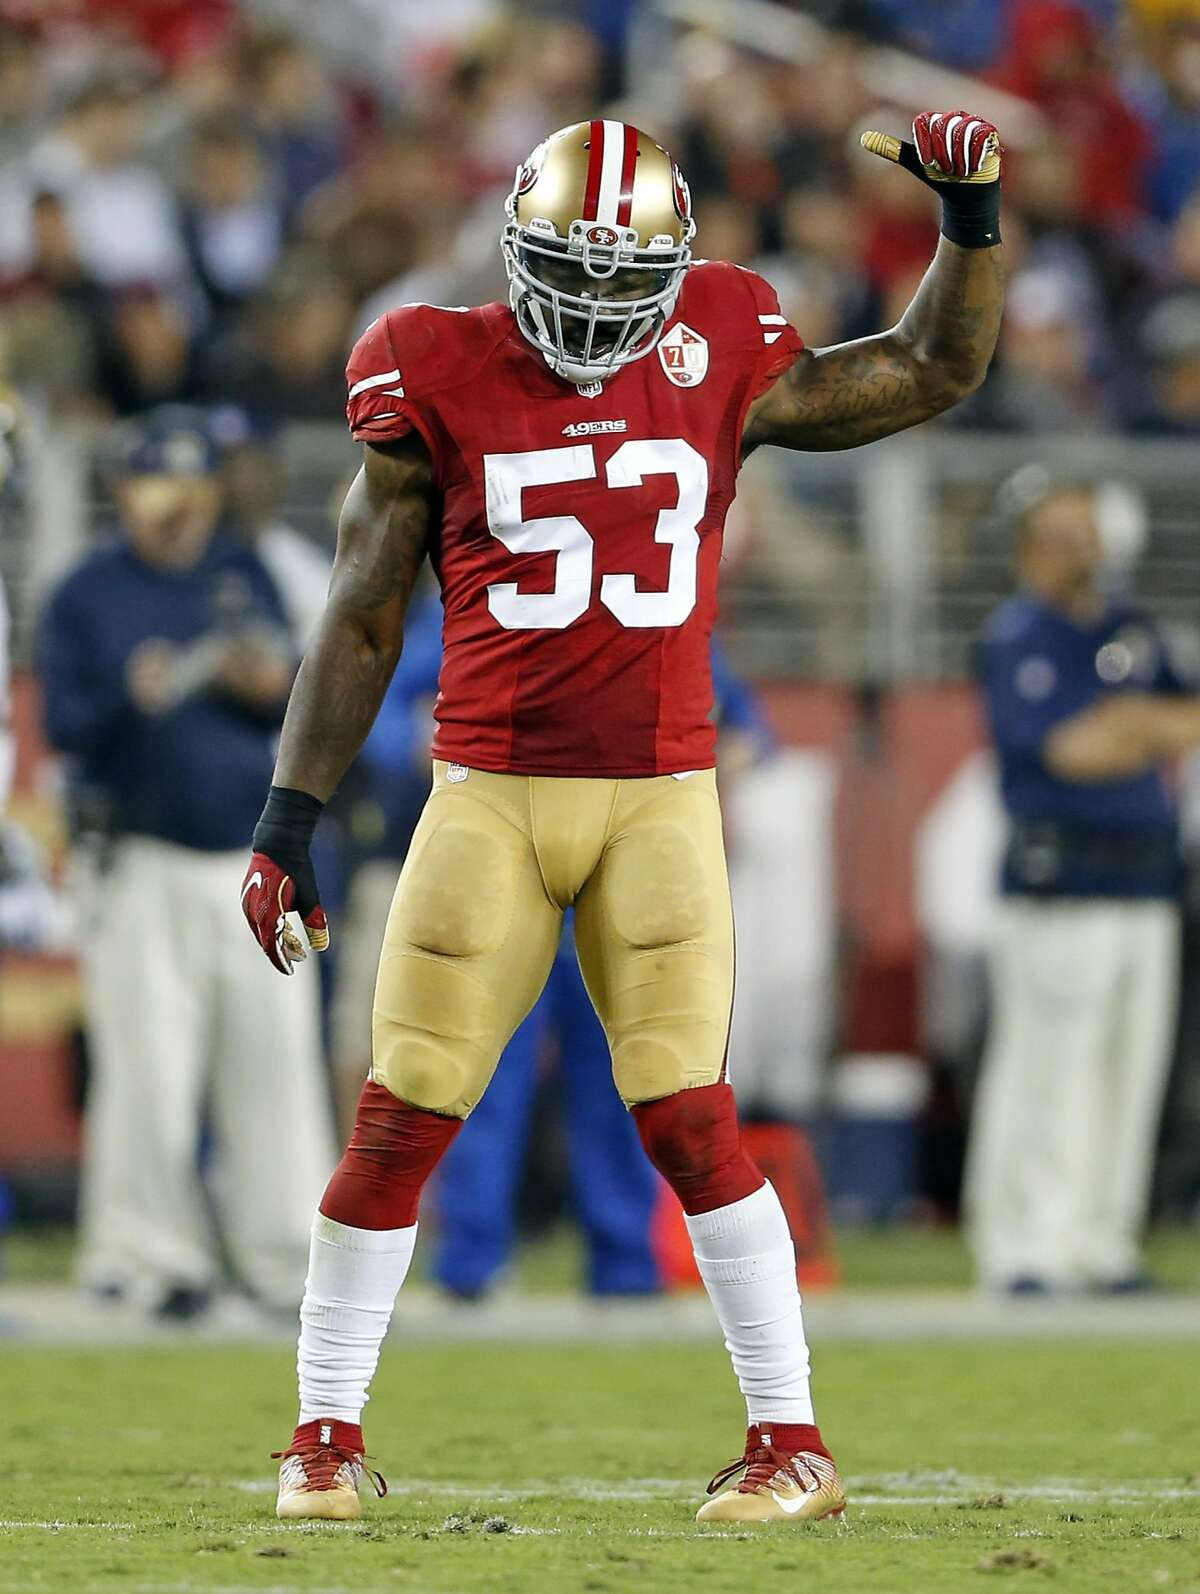 San Francisco 49ers' NaVorro Bowman against Los Angeles Rams during NFL game at Levi's Stadium in Santa Clara, Calif., on Monday, September 12, 2016.